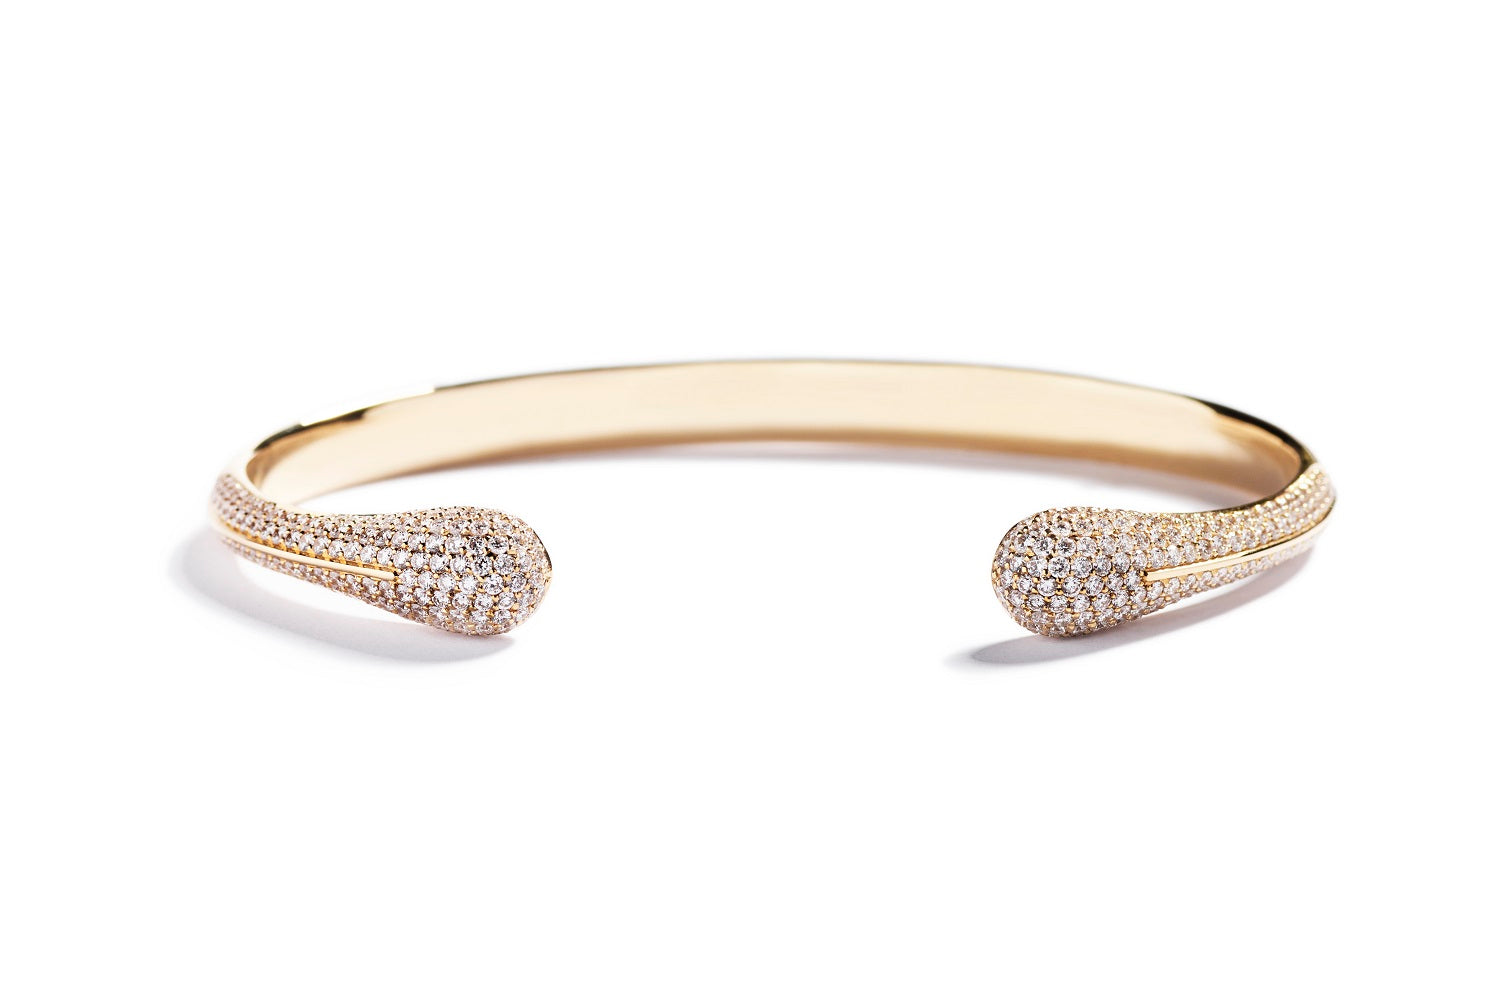 Signature bangle in 18k yellow gold with brilliant cut diamonds